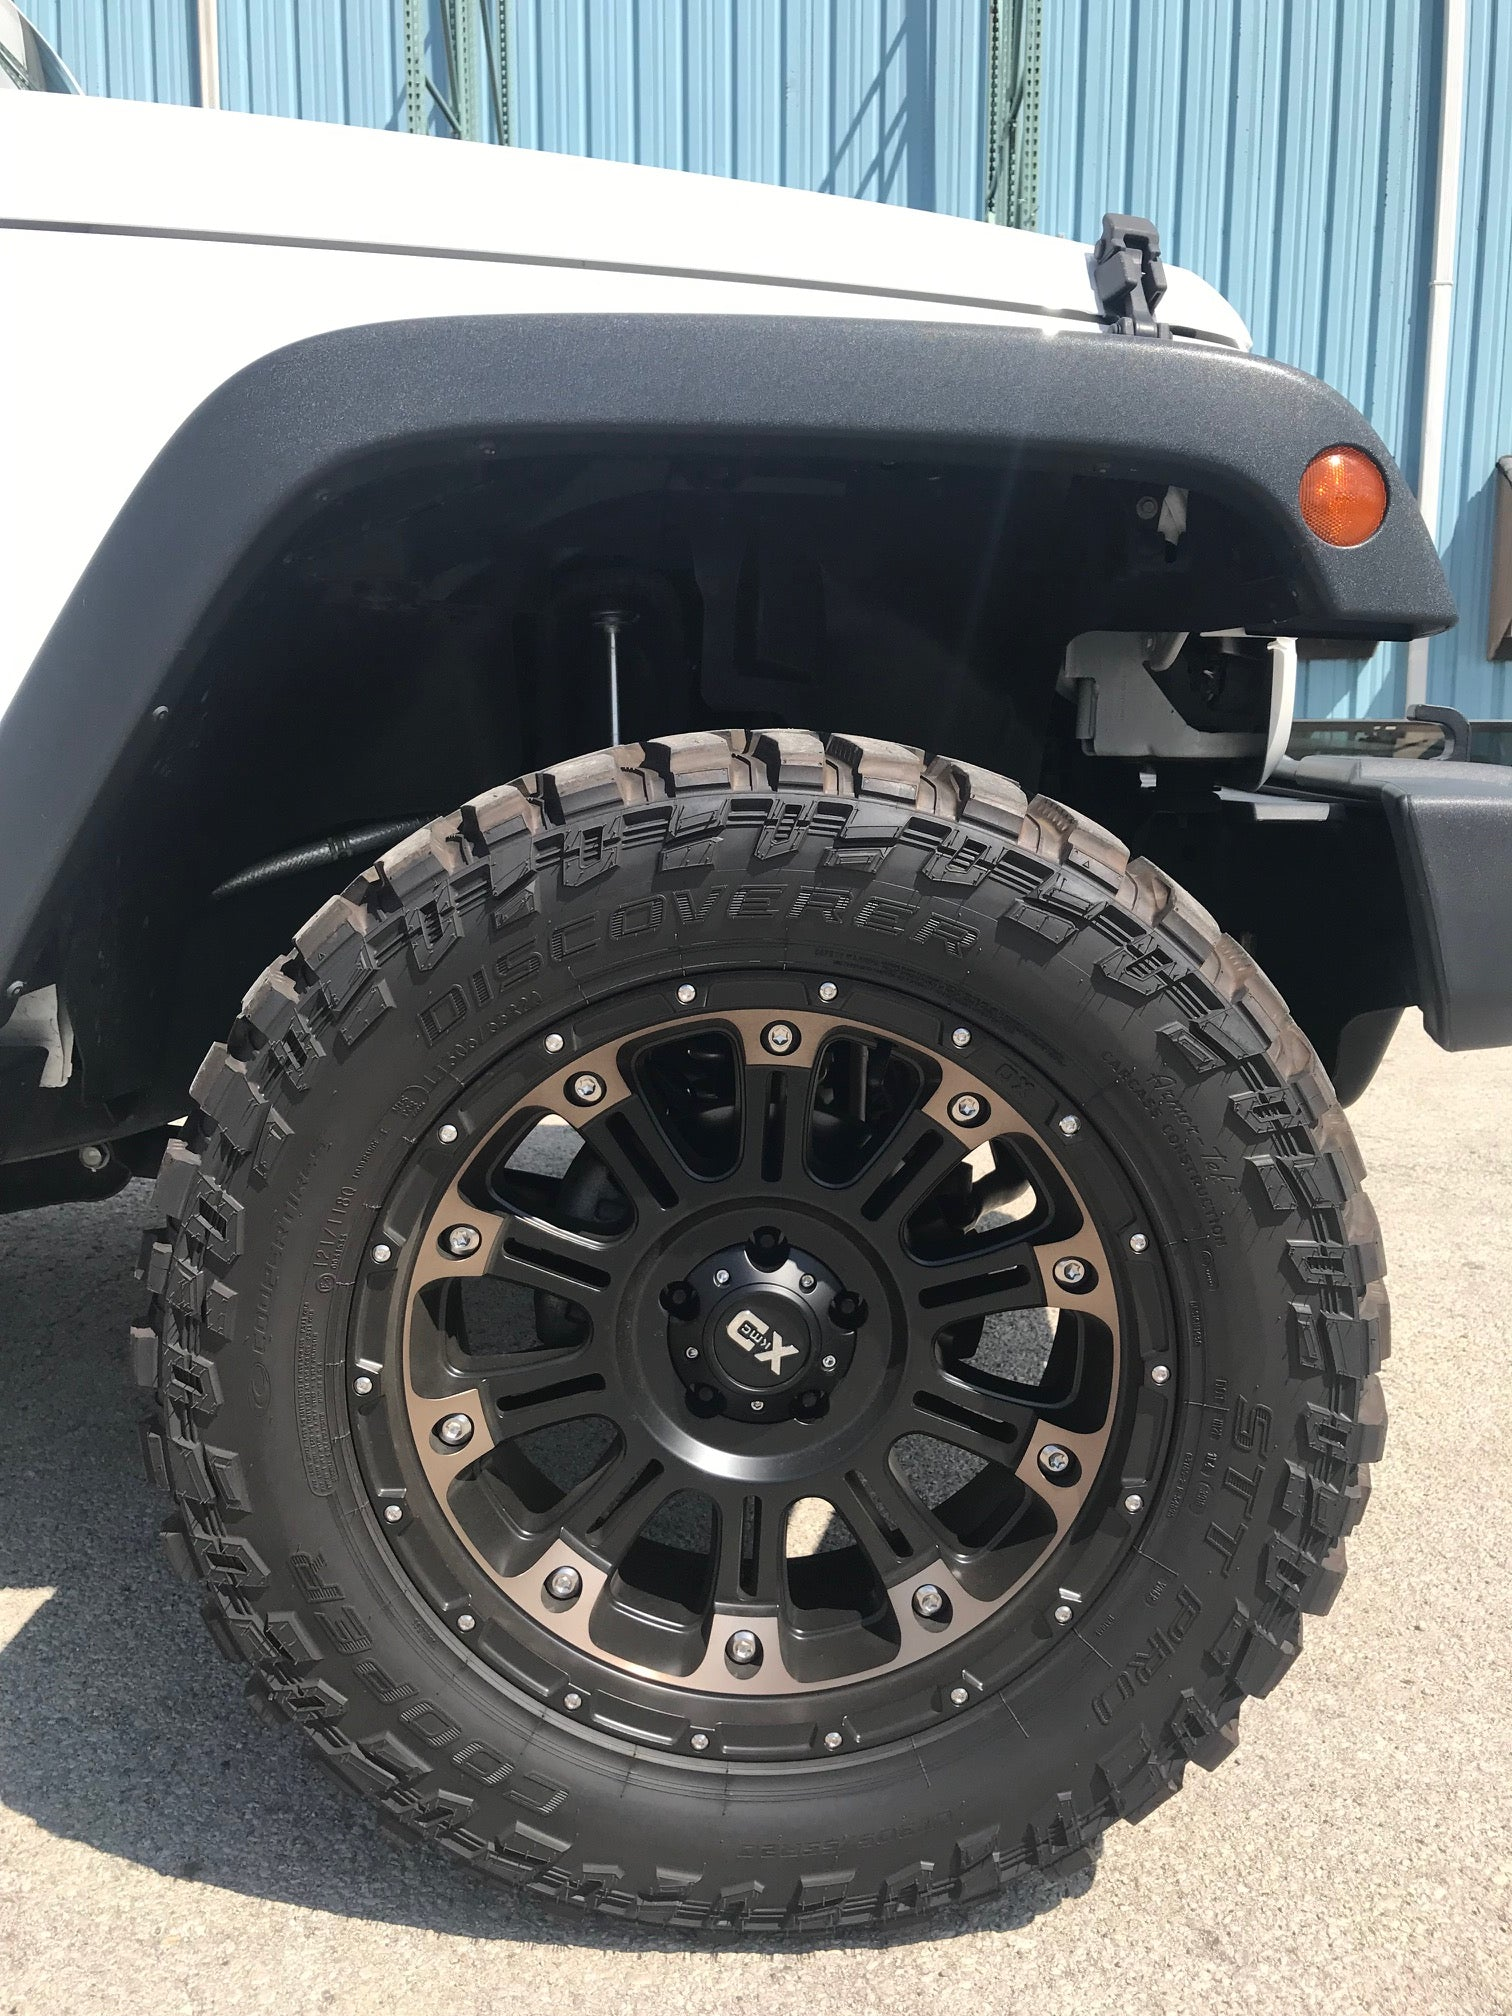 KMC XD Jeep Off Road Wheels Wrapped in Cooper Discovery STT Pro Tires